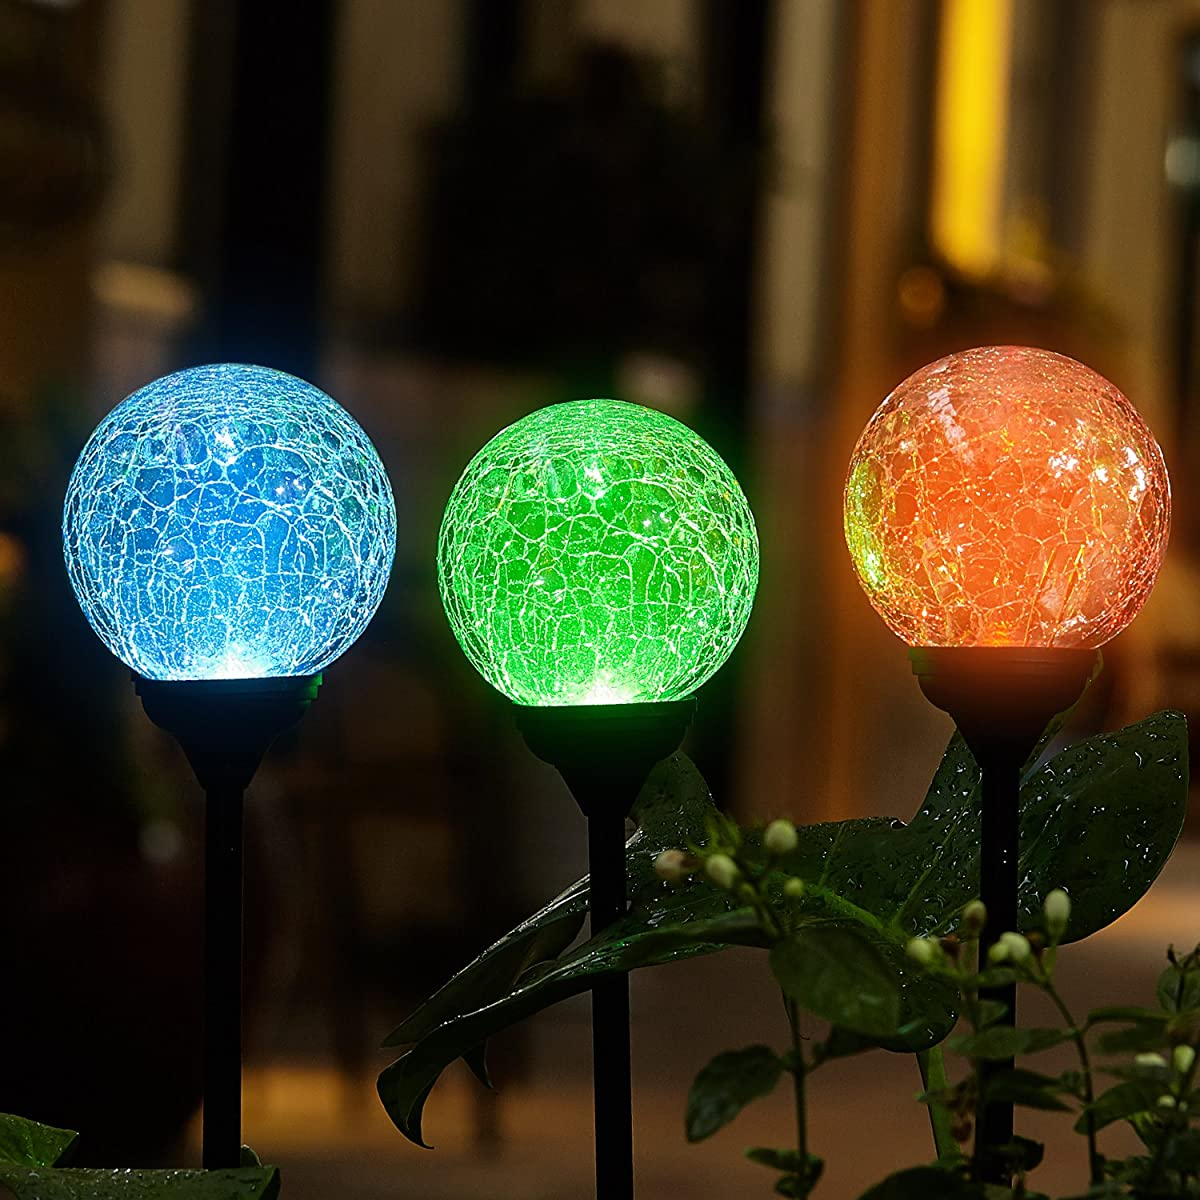 FC-Fancier Solar Powered Crackle Glass Ball,for Outdoor Garden Led Light Landscape / Pathway Lights,Color Changing and White,Weatherproof Design,3 Pack